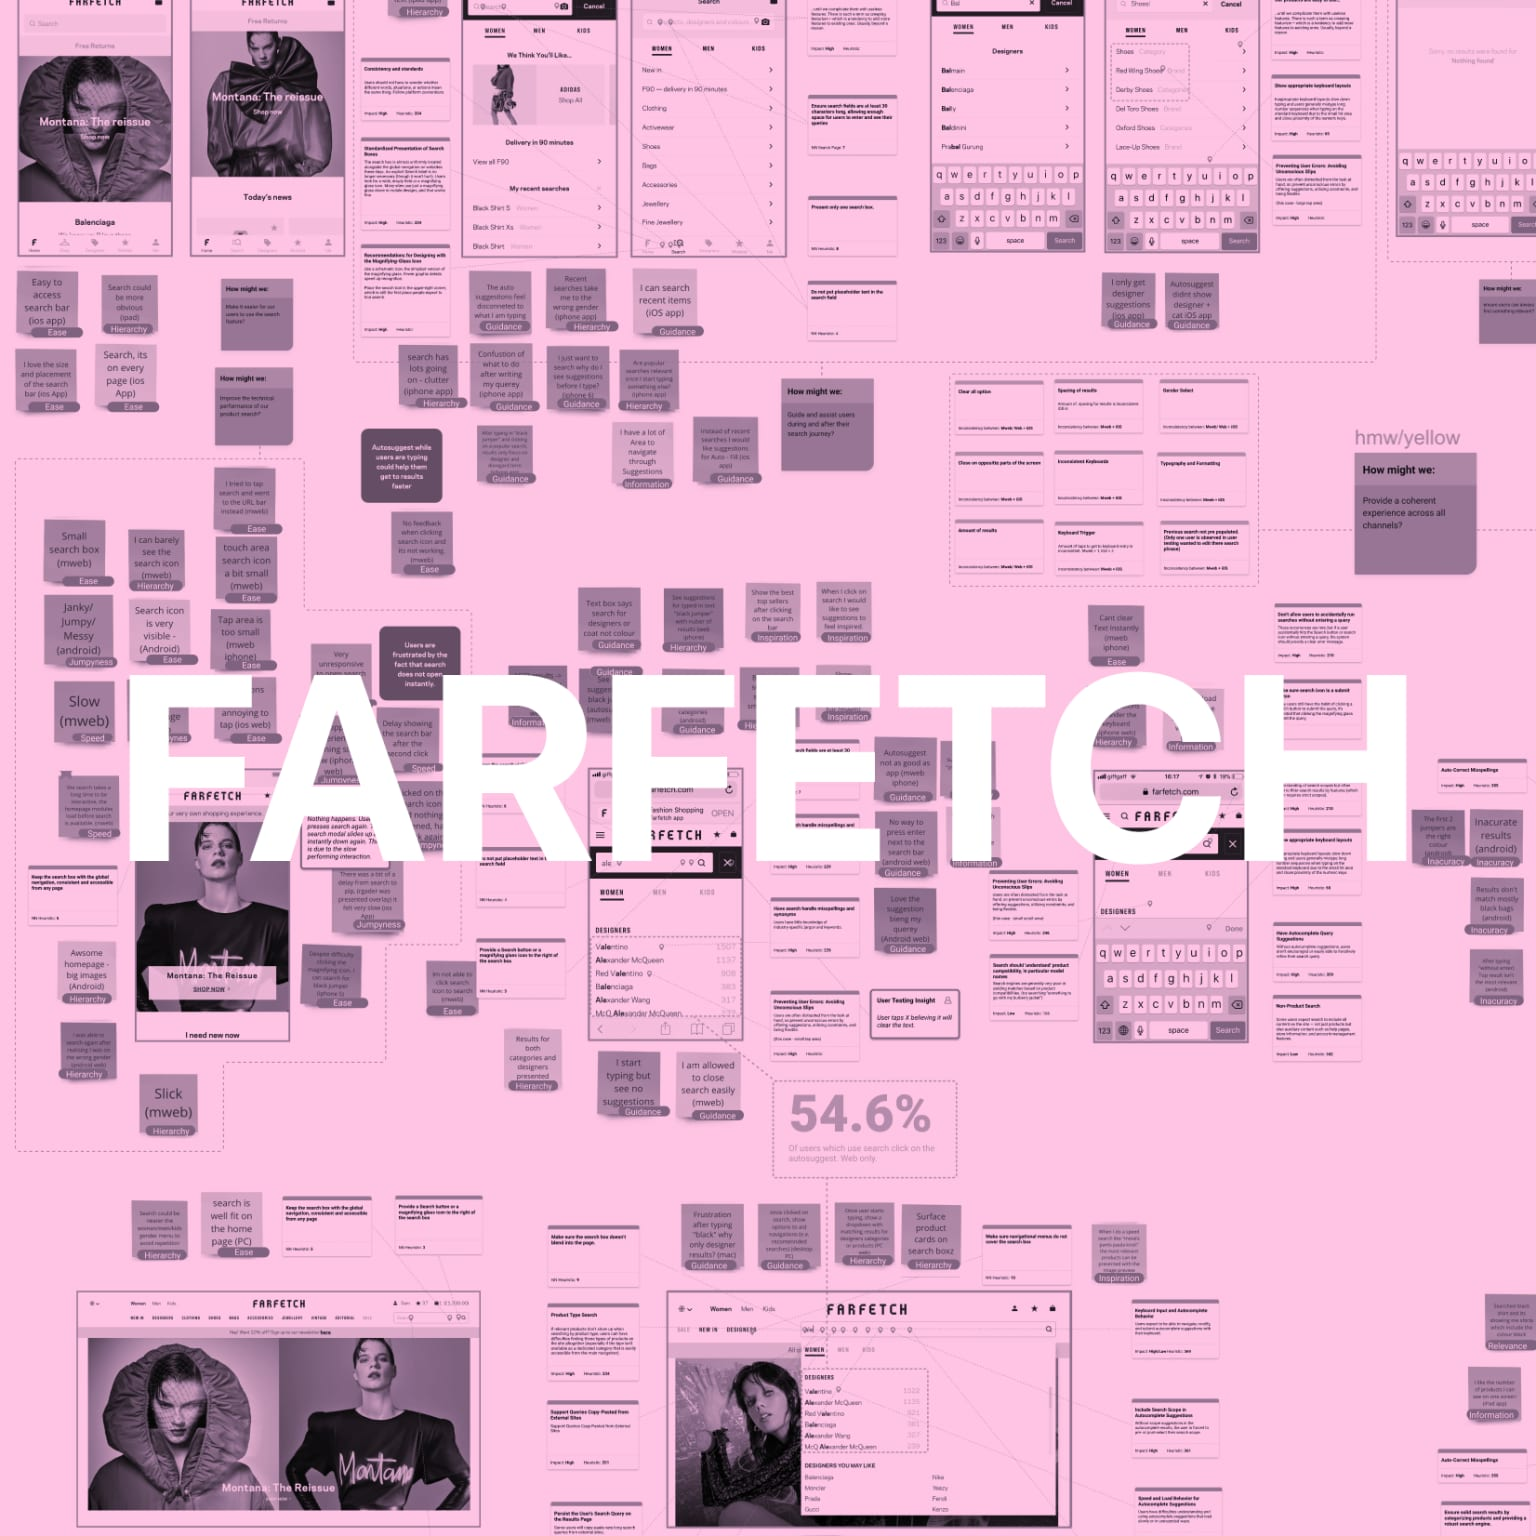 Farfetch Product Listing Page